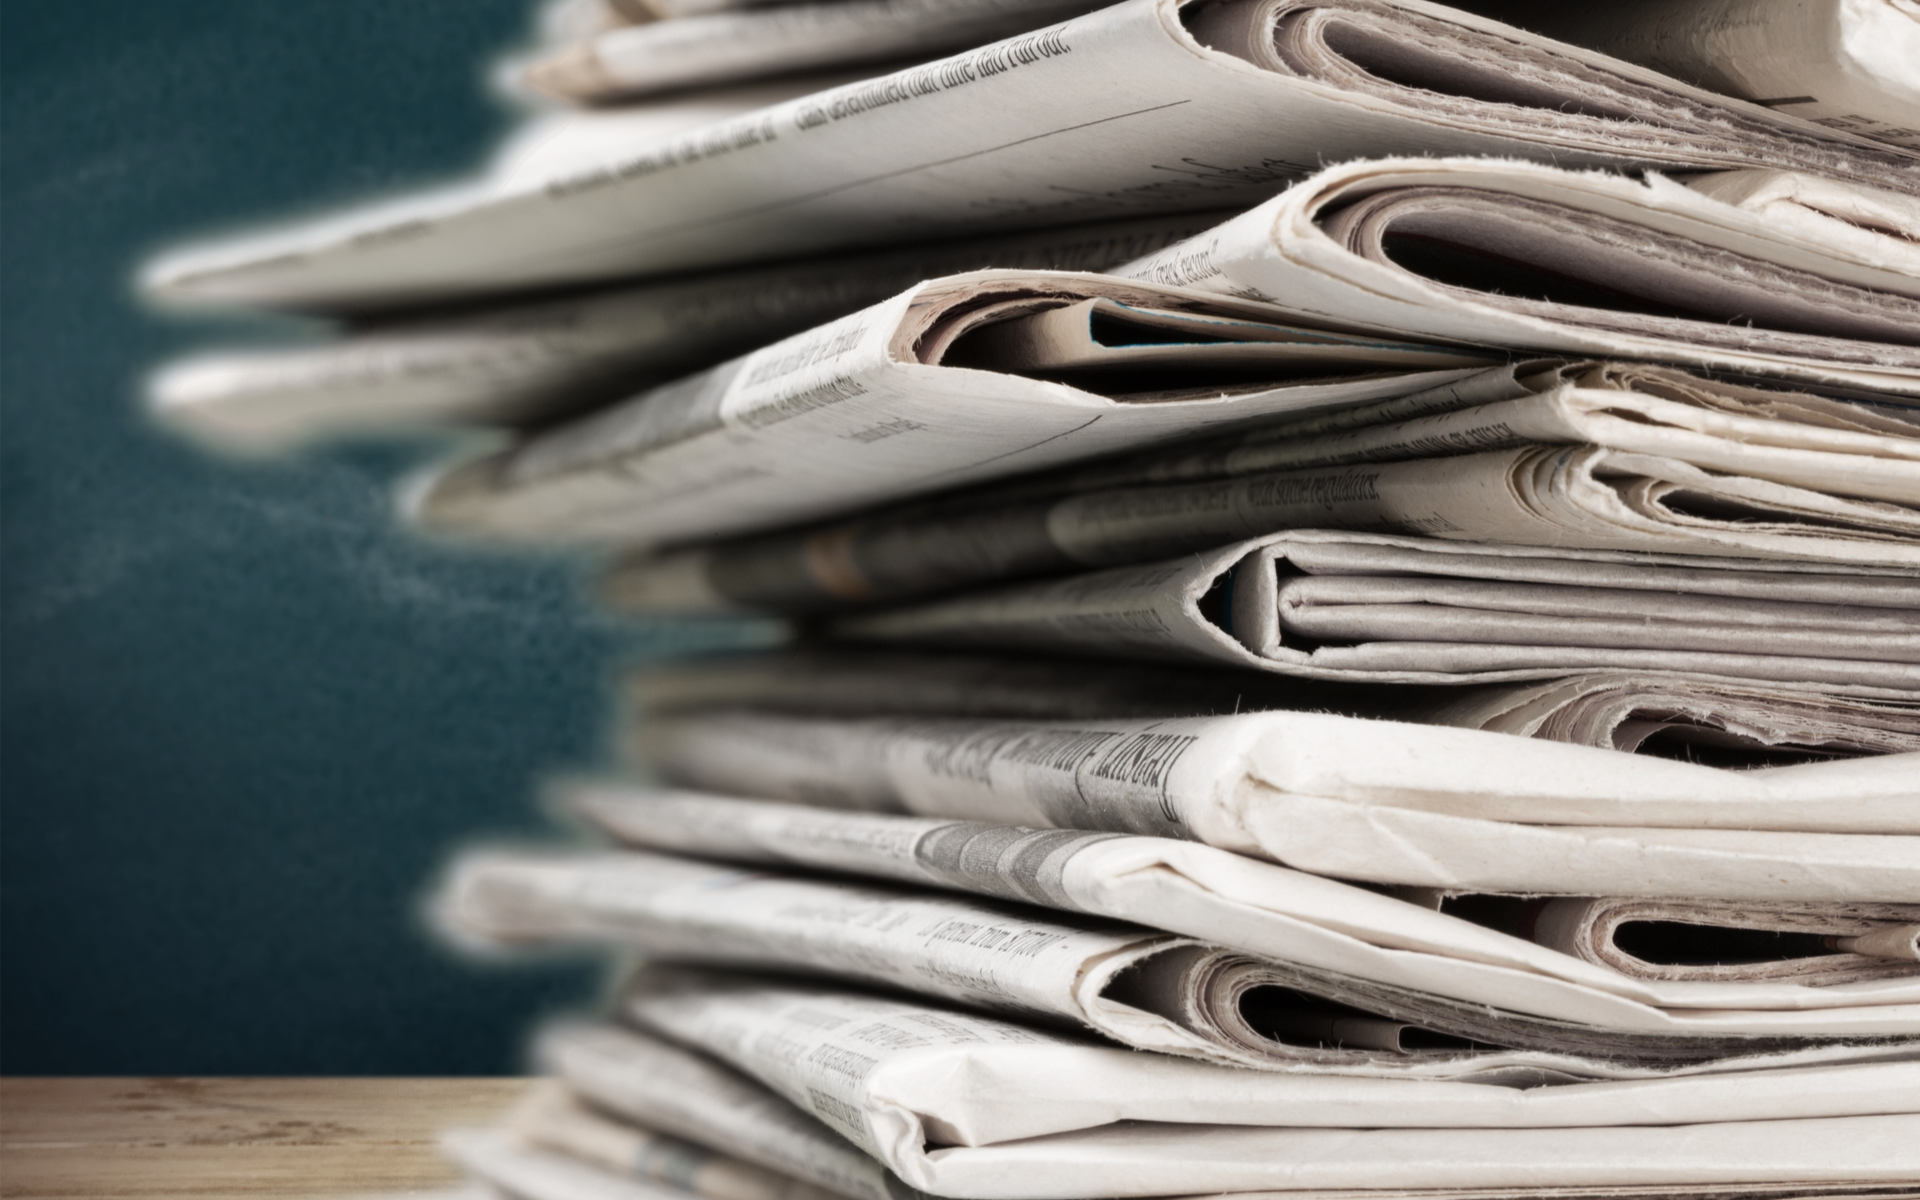 bitcoin price news weekly digest newspapers